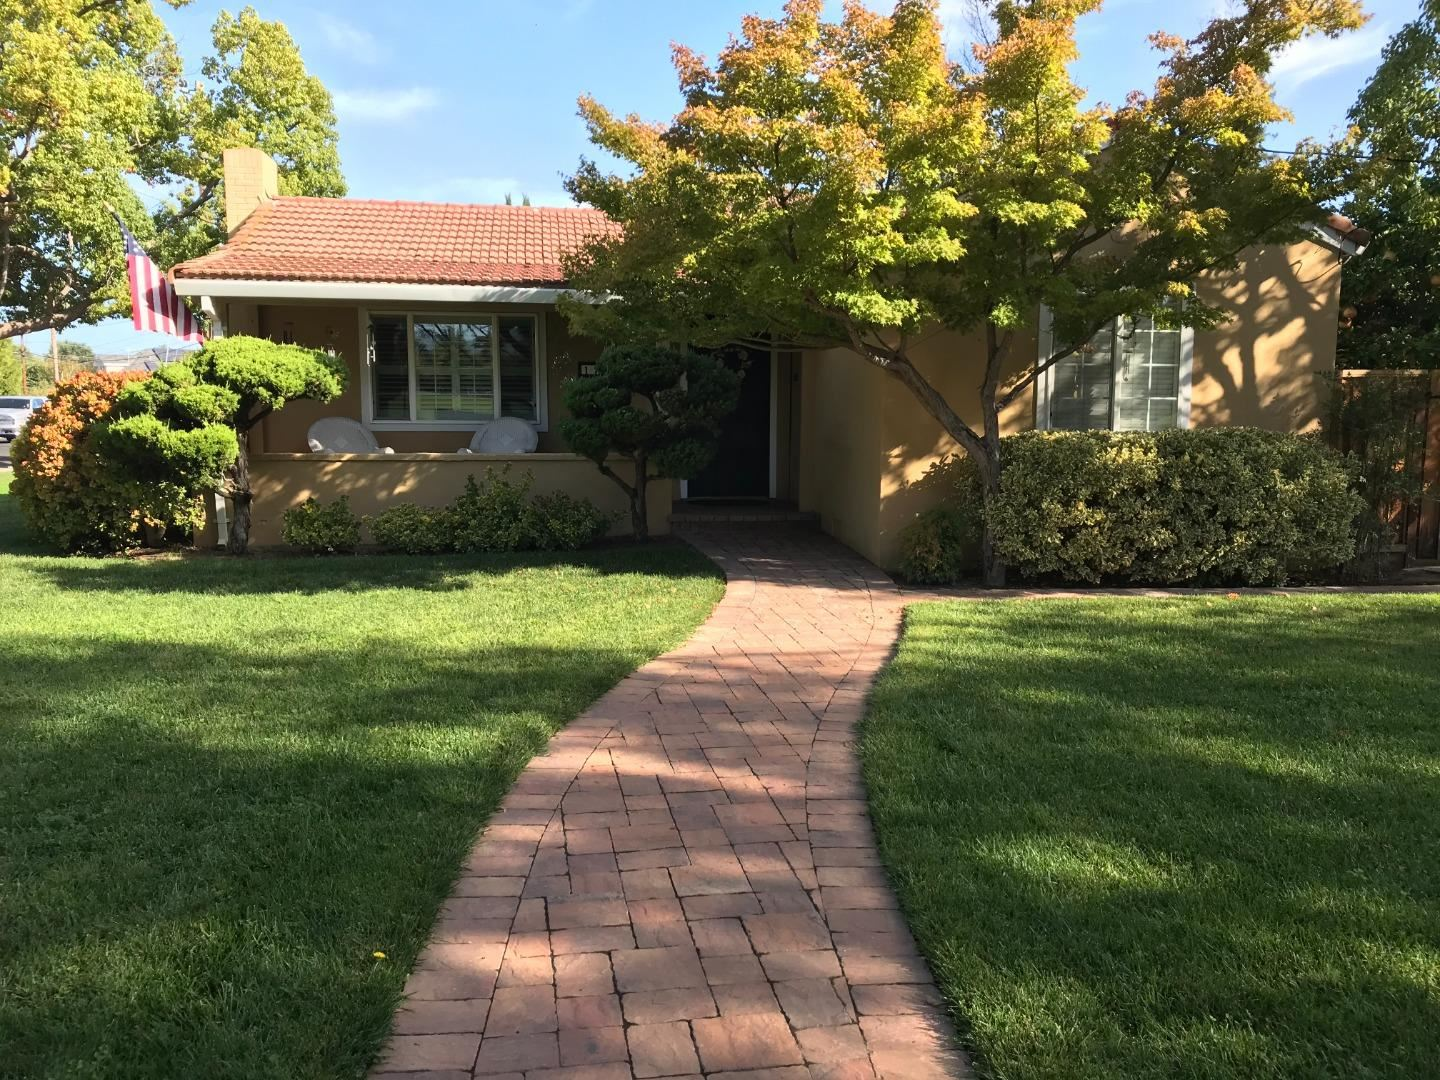 Photo for 179 W Latimer AVE, CAMPBELL, CA 95008 (MLS # ML81813531)